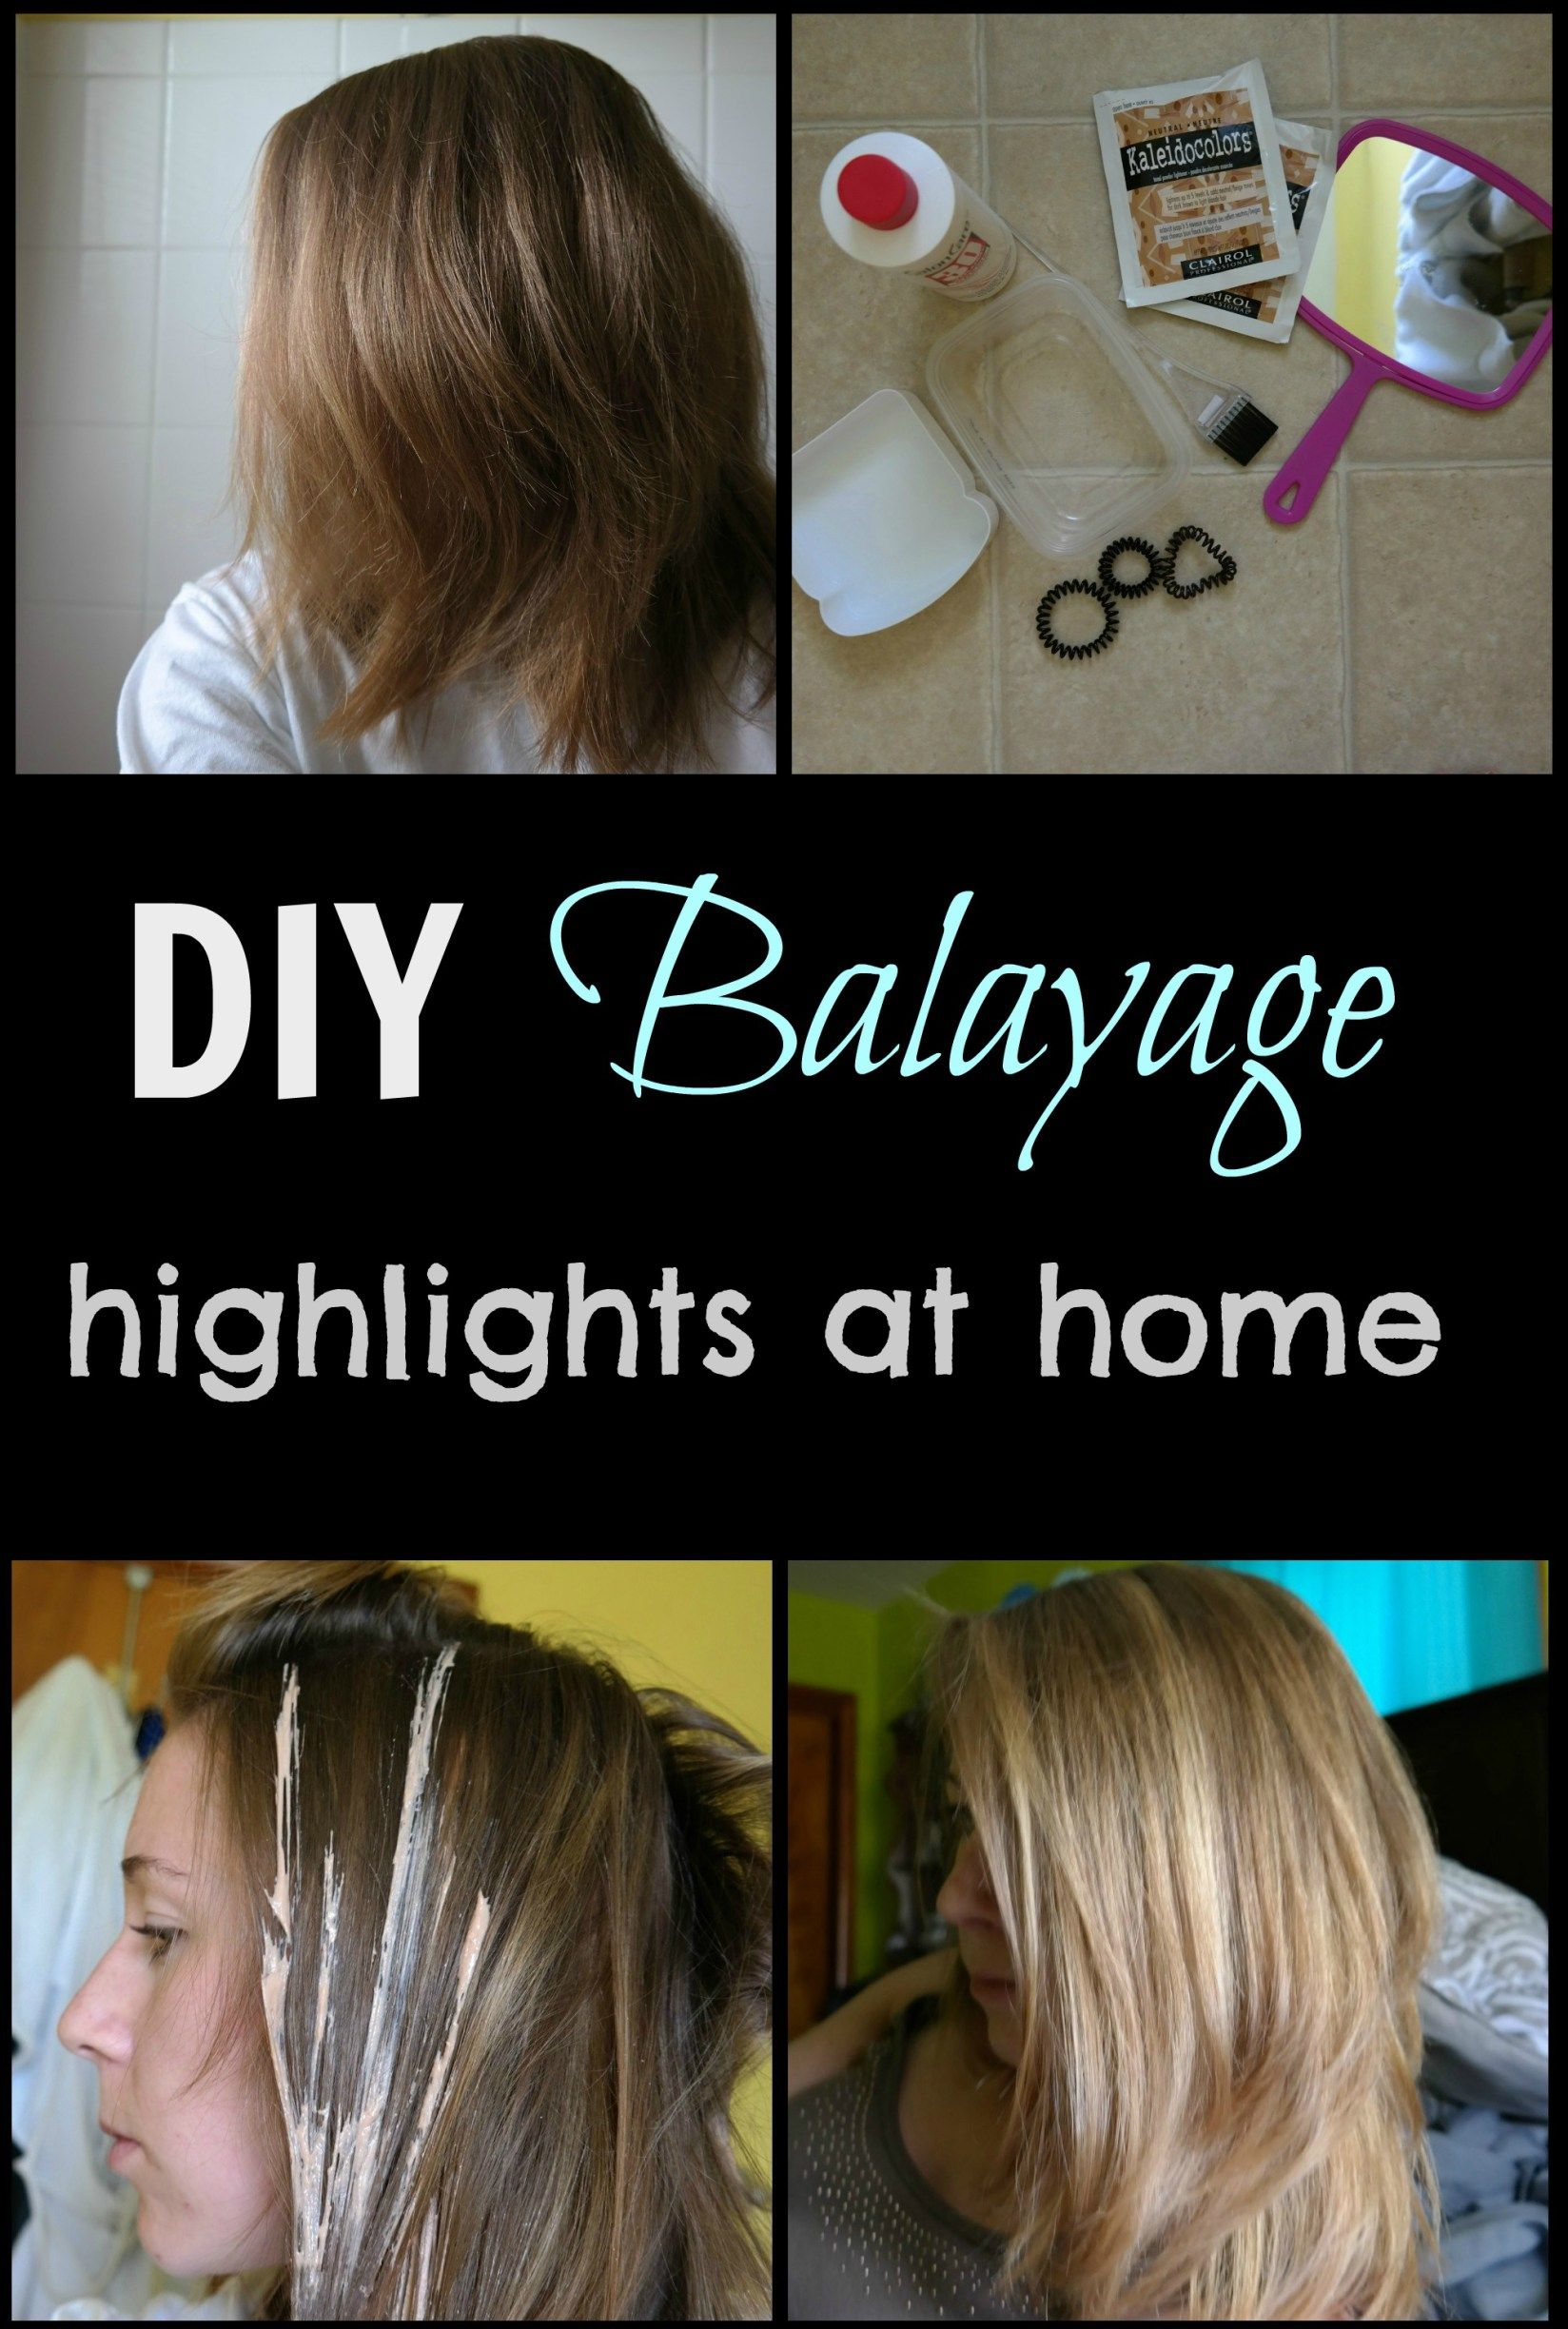 Diy balayage highlights at home tutorial cheap and easy diy balayage highlights at home tutorial cheap and easy 2sharemyjoy solutioingenieria Image collections